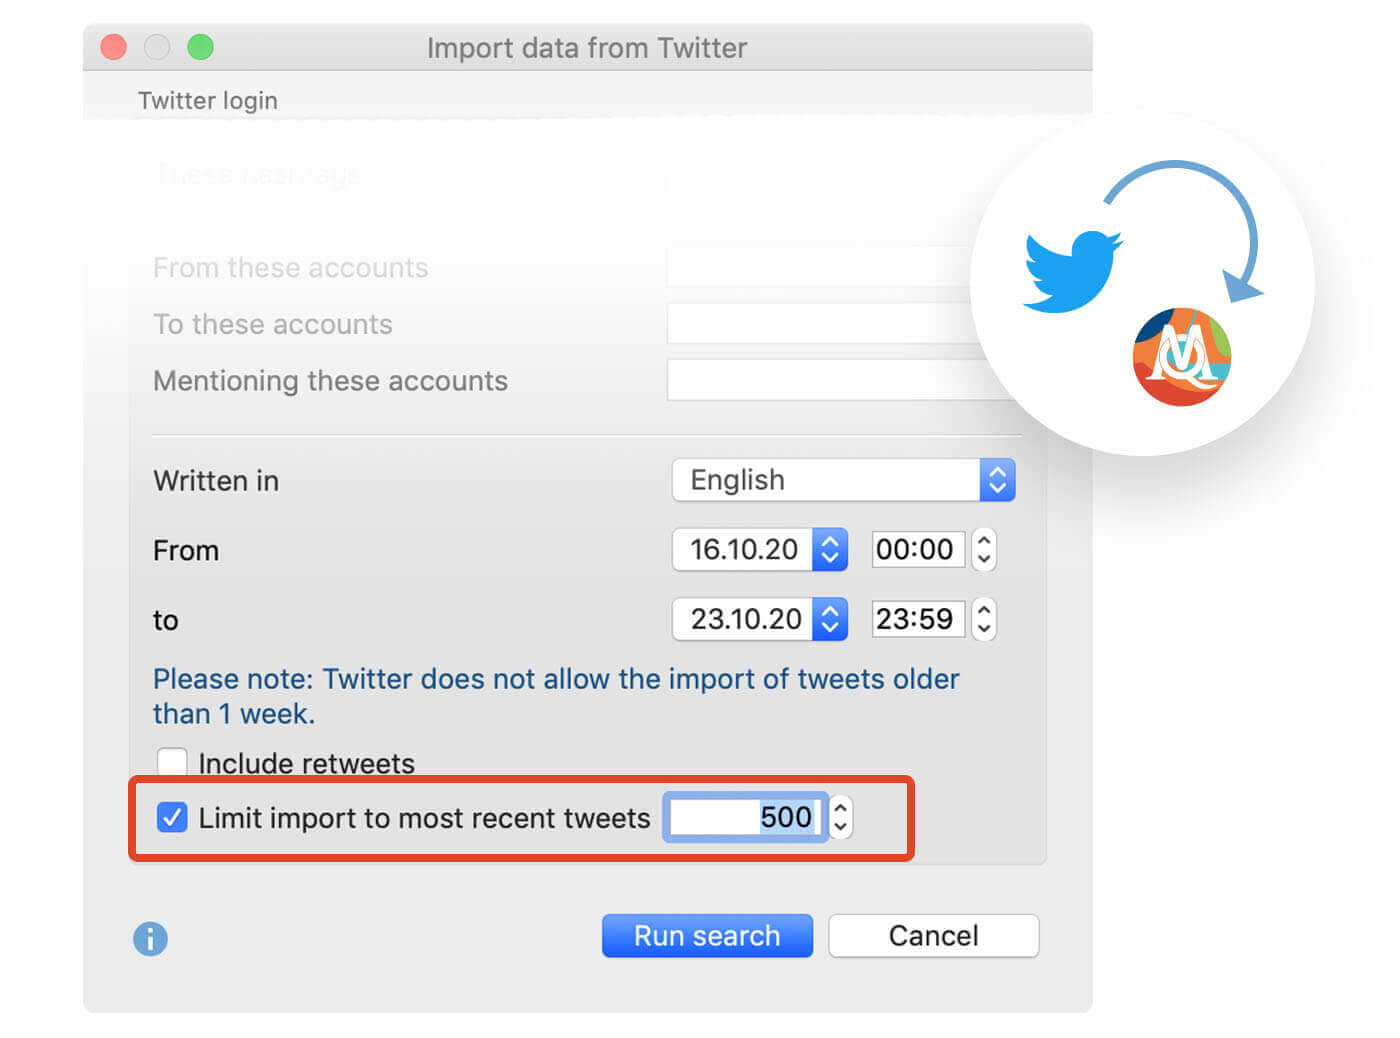 Screenschot from MAXQDA2020 showing the new option to import only the most recent Twitter tweets.